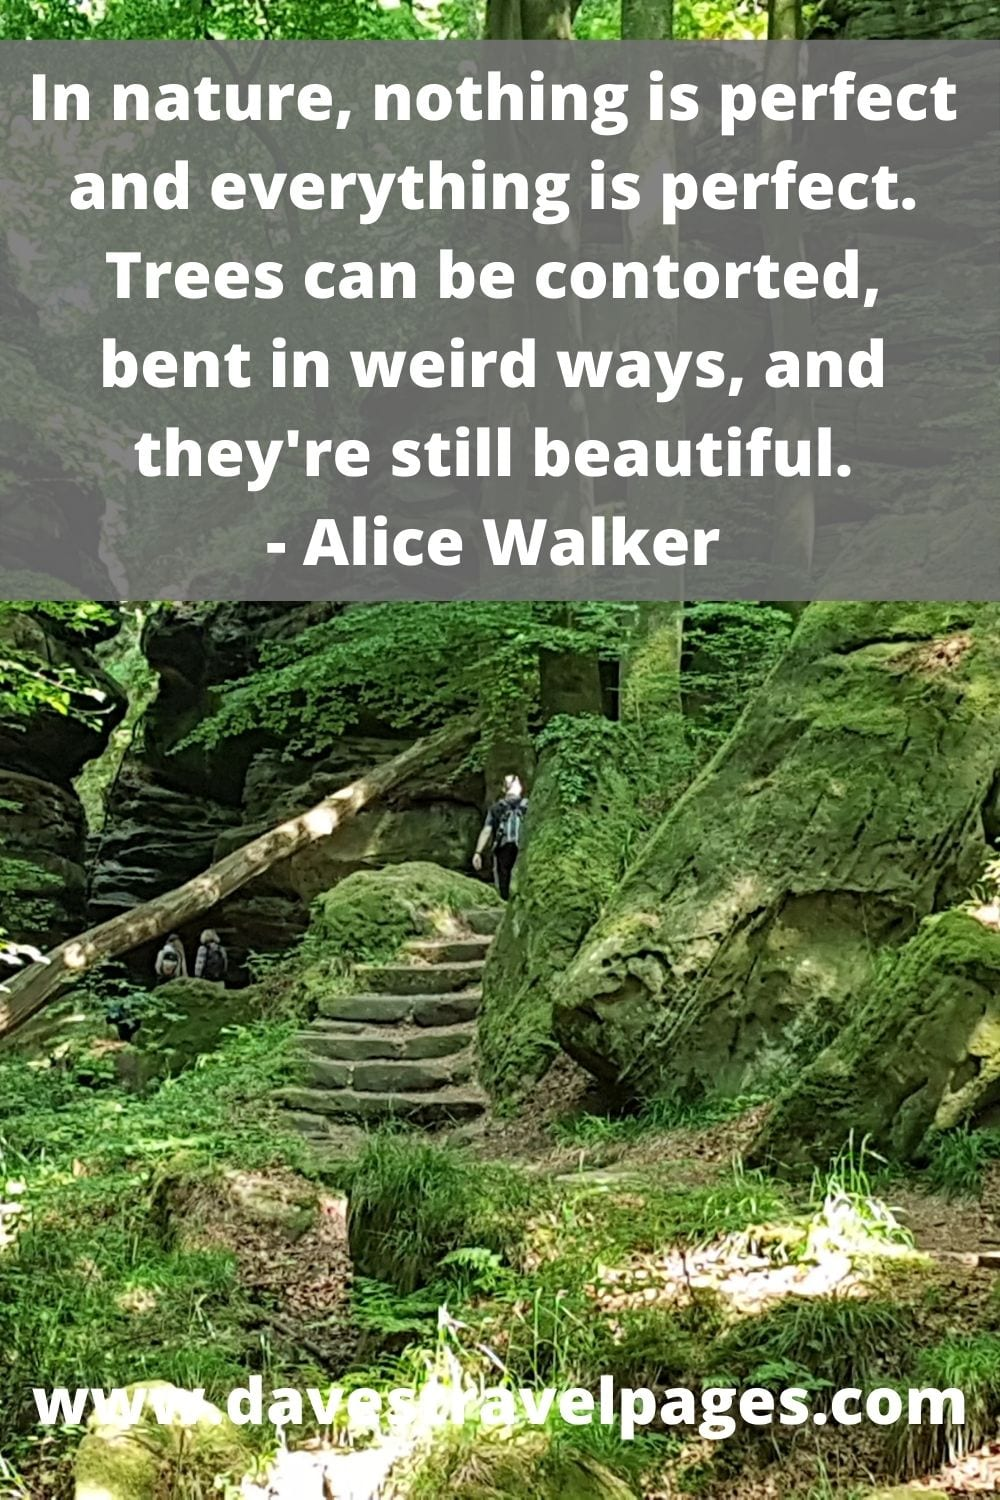 In nature, nothing is perfect and everything is perfect. Trees can be contorted, bent in weird ways, and they're still beautiful. Alice Walker Quotes about the nature